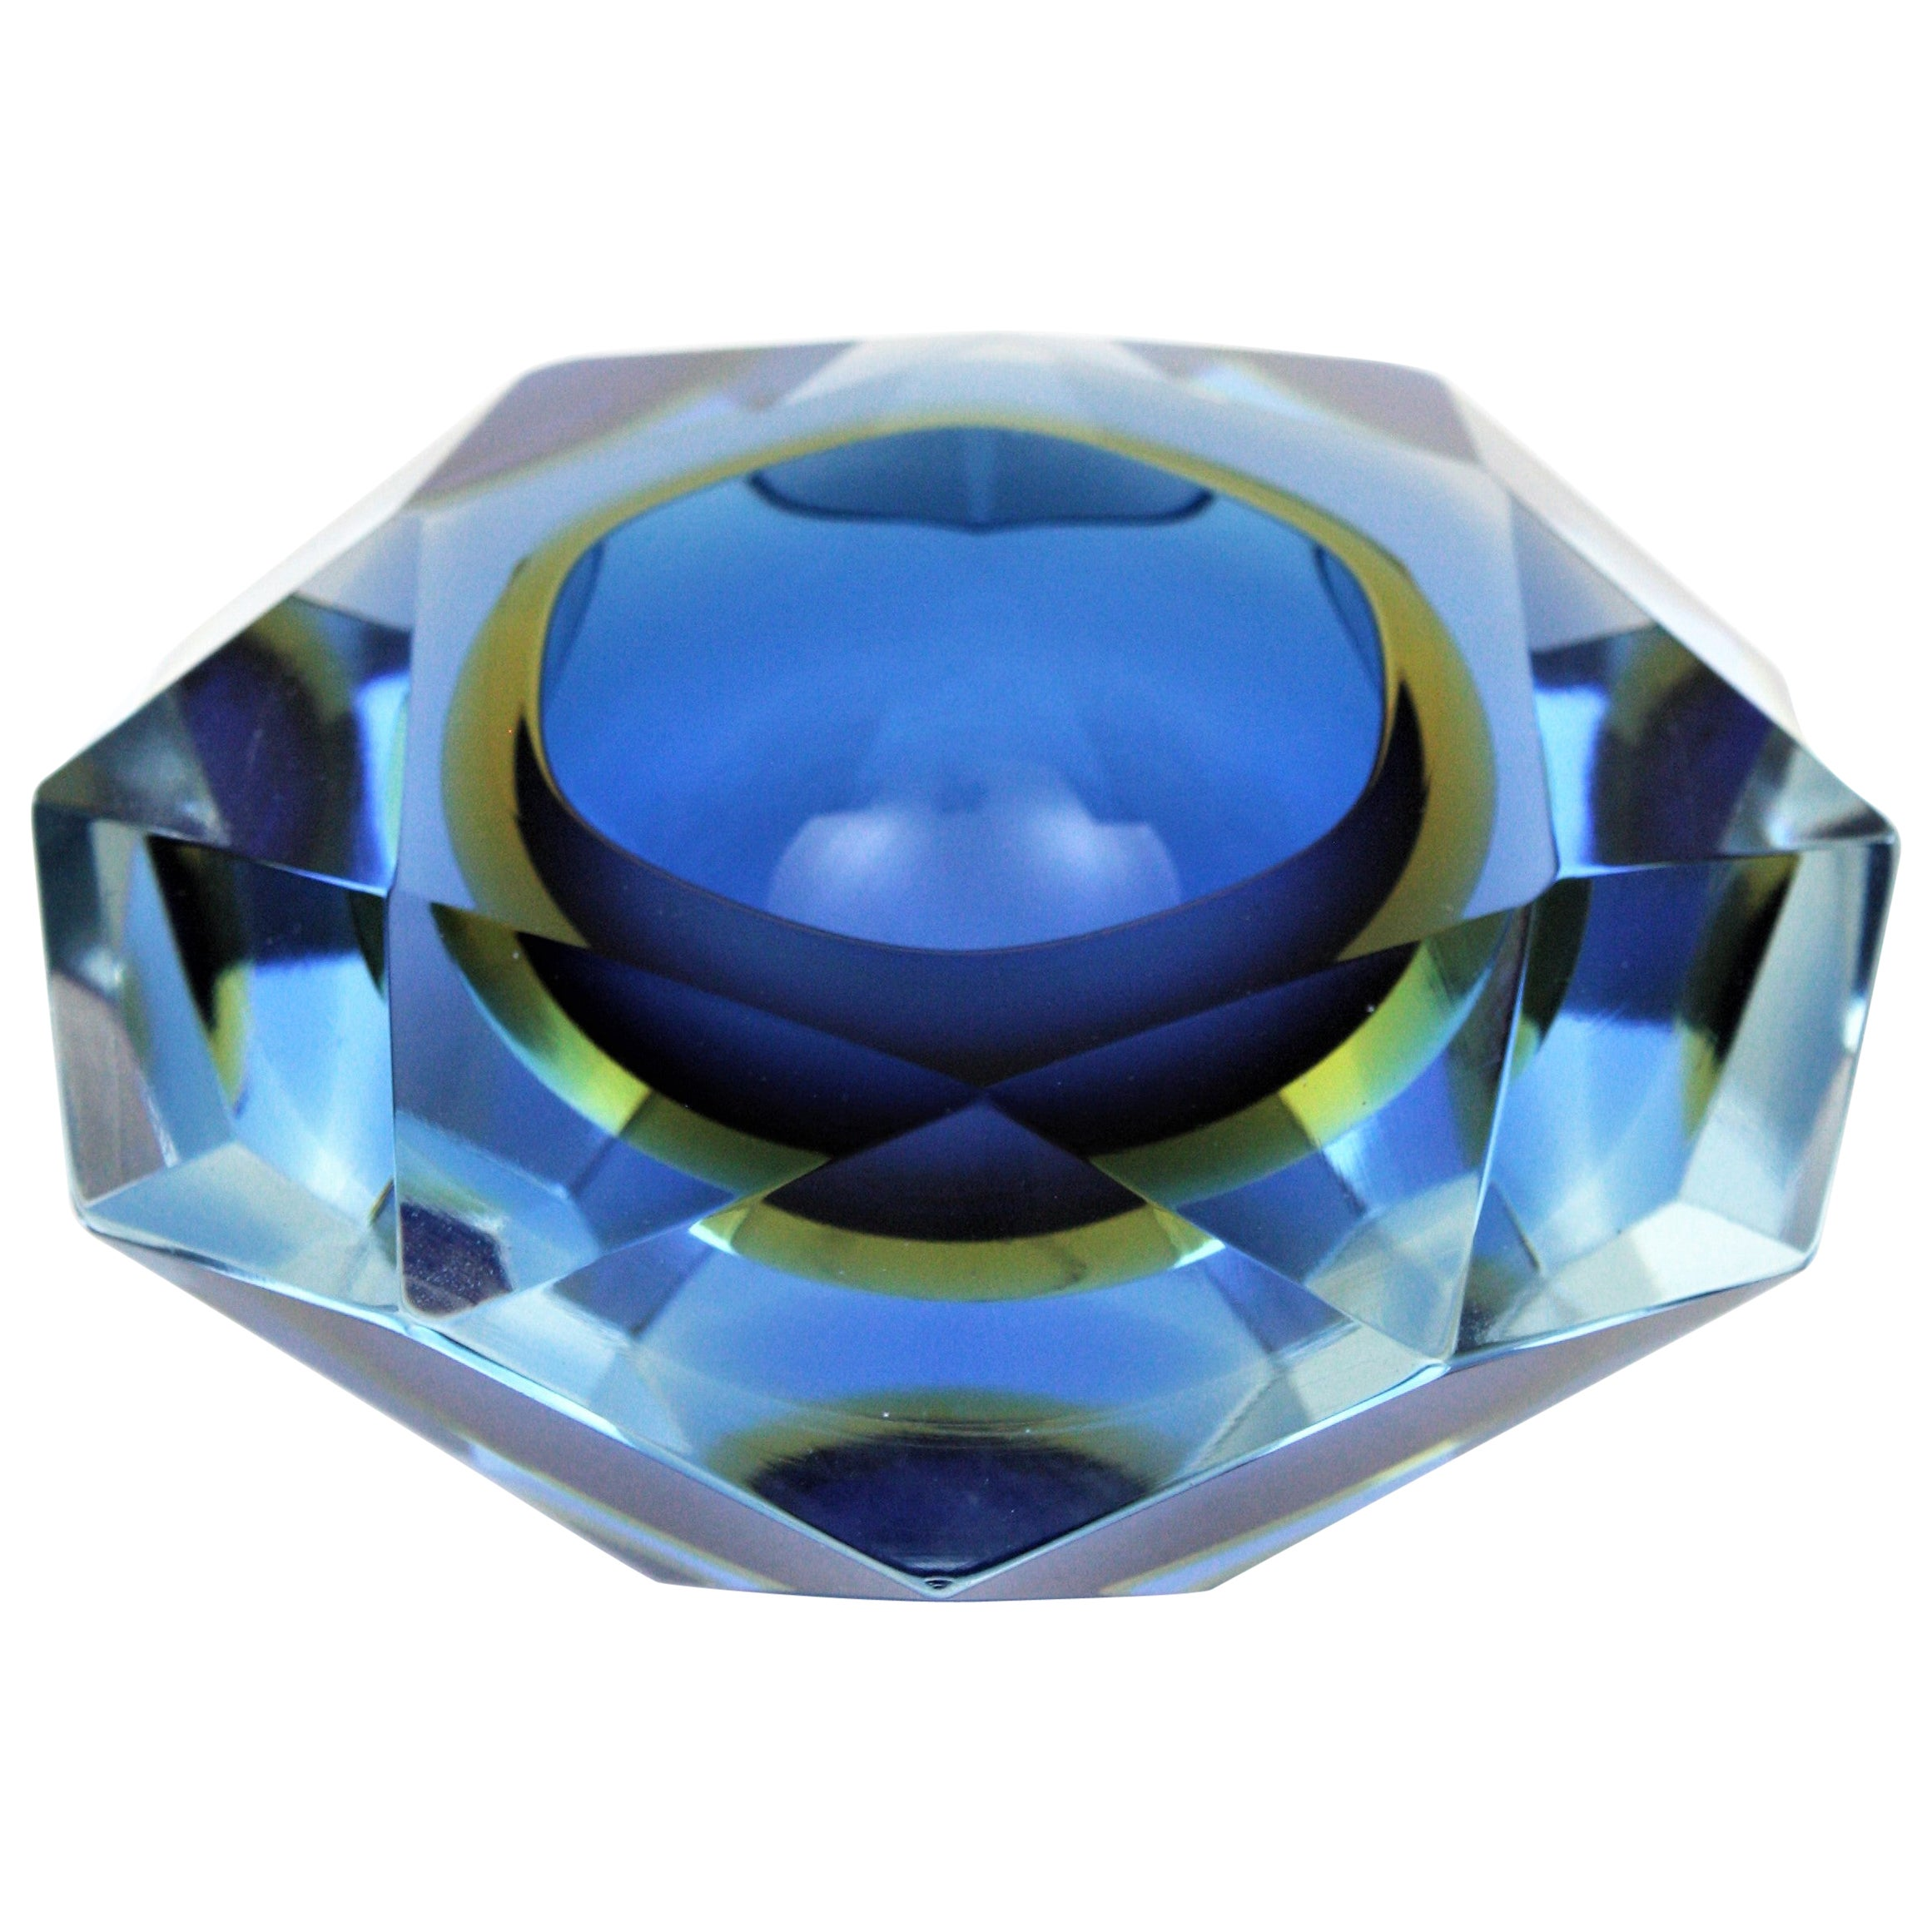 Flavio Poli Murano Cobalt Blue and Yellow Sommerso Faceted Giant Art Glass Bowl